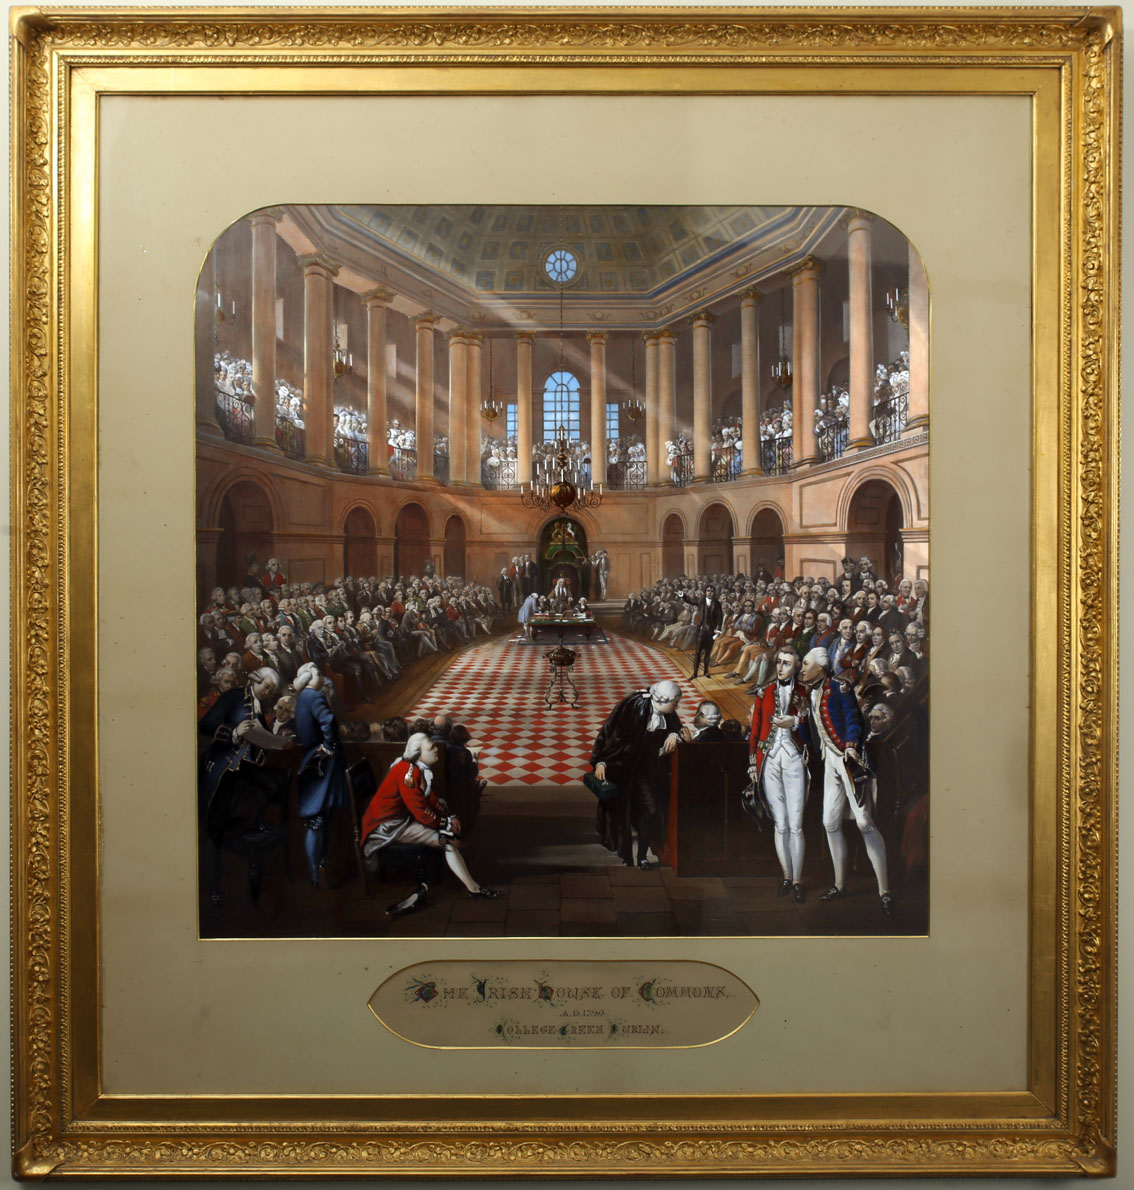 1790 The Irish House of Commons, The Great Parliament of Ireland. After H Barrand and J Hayter,